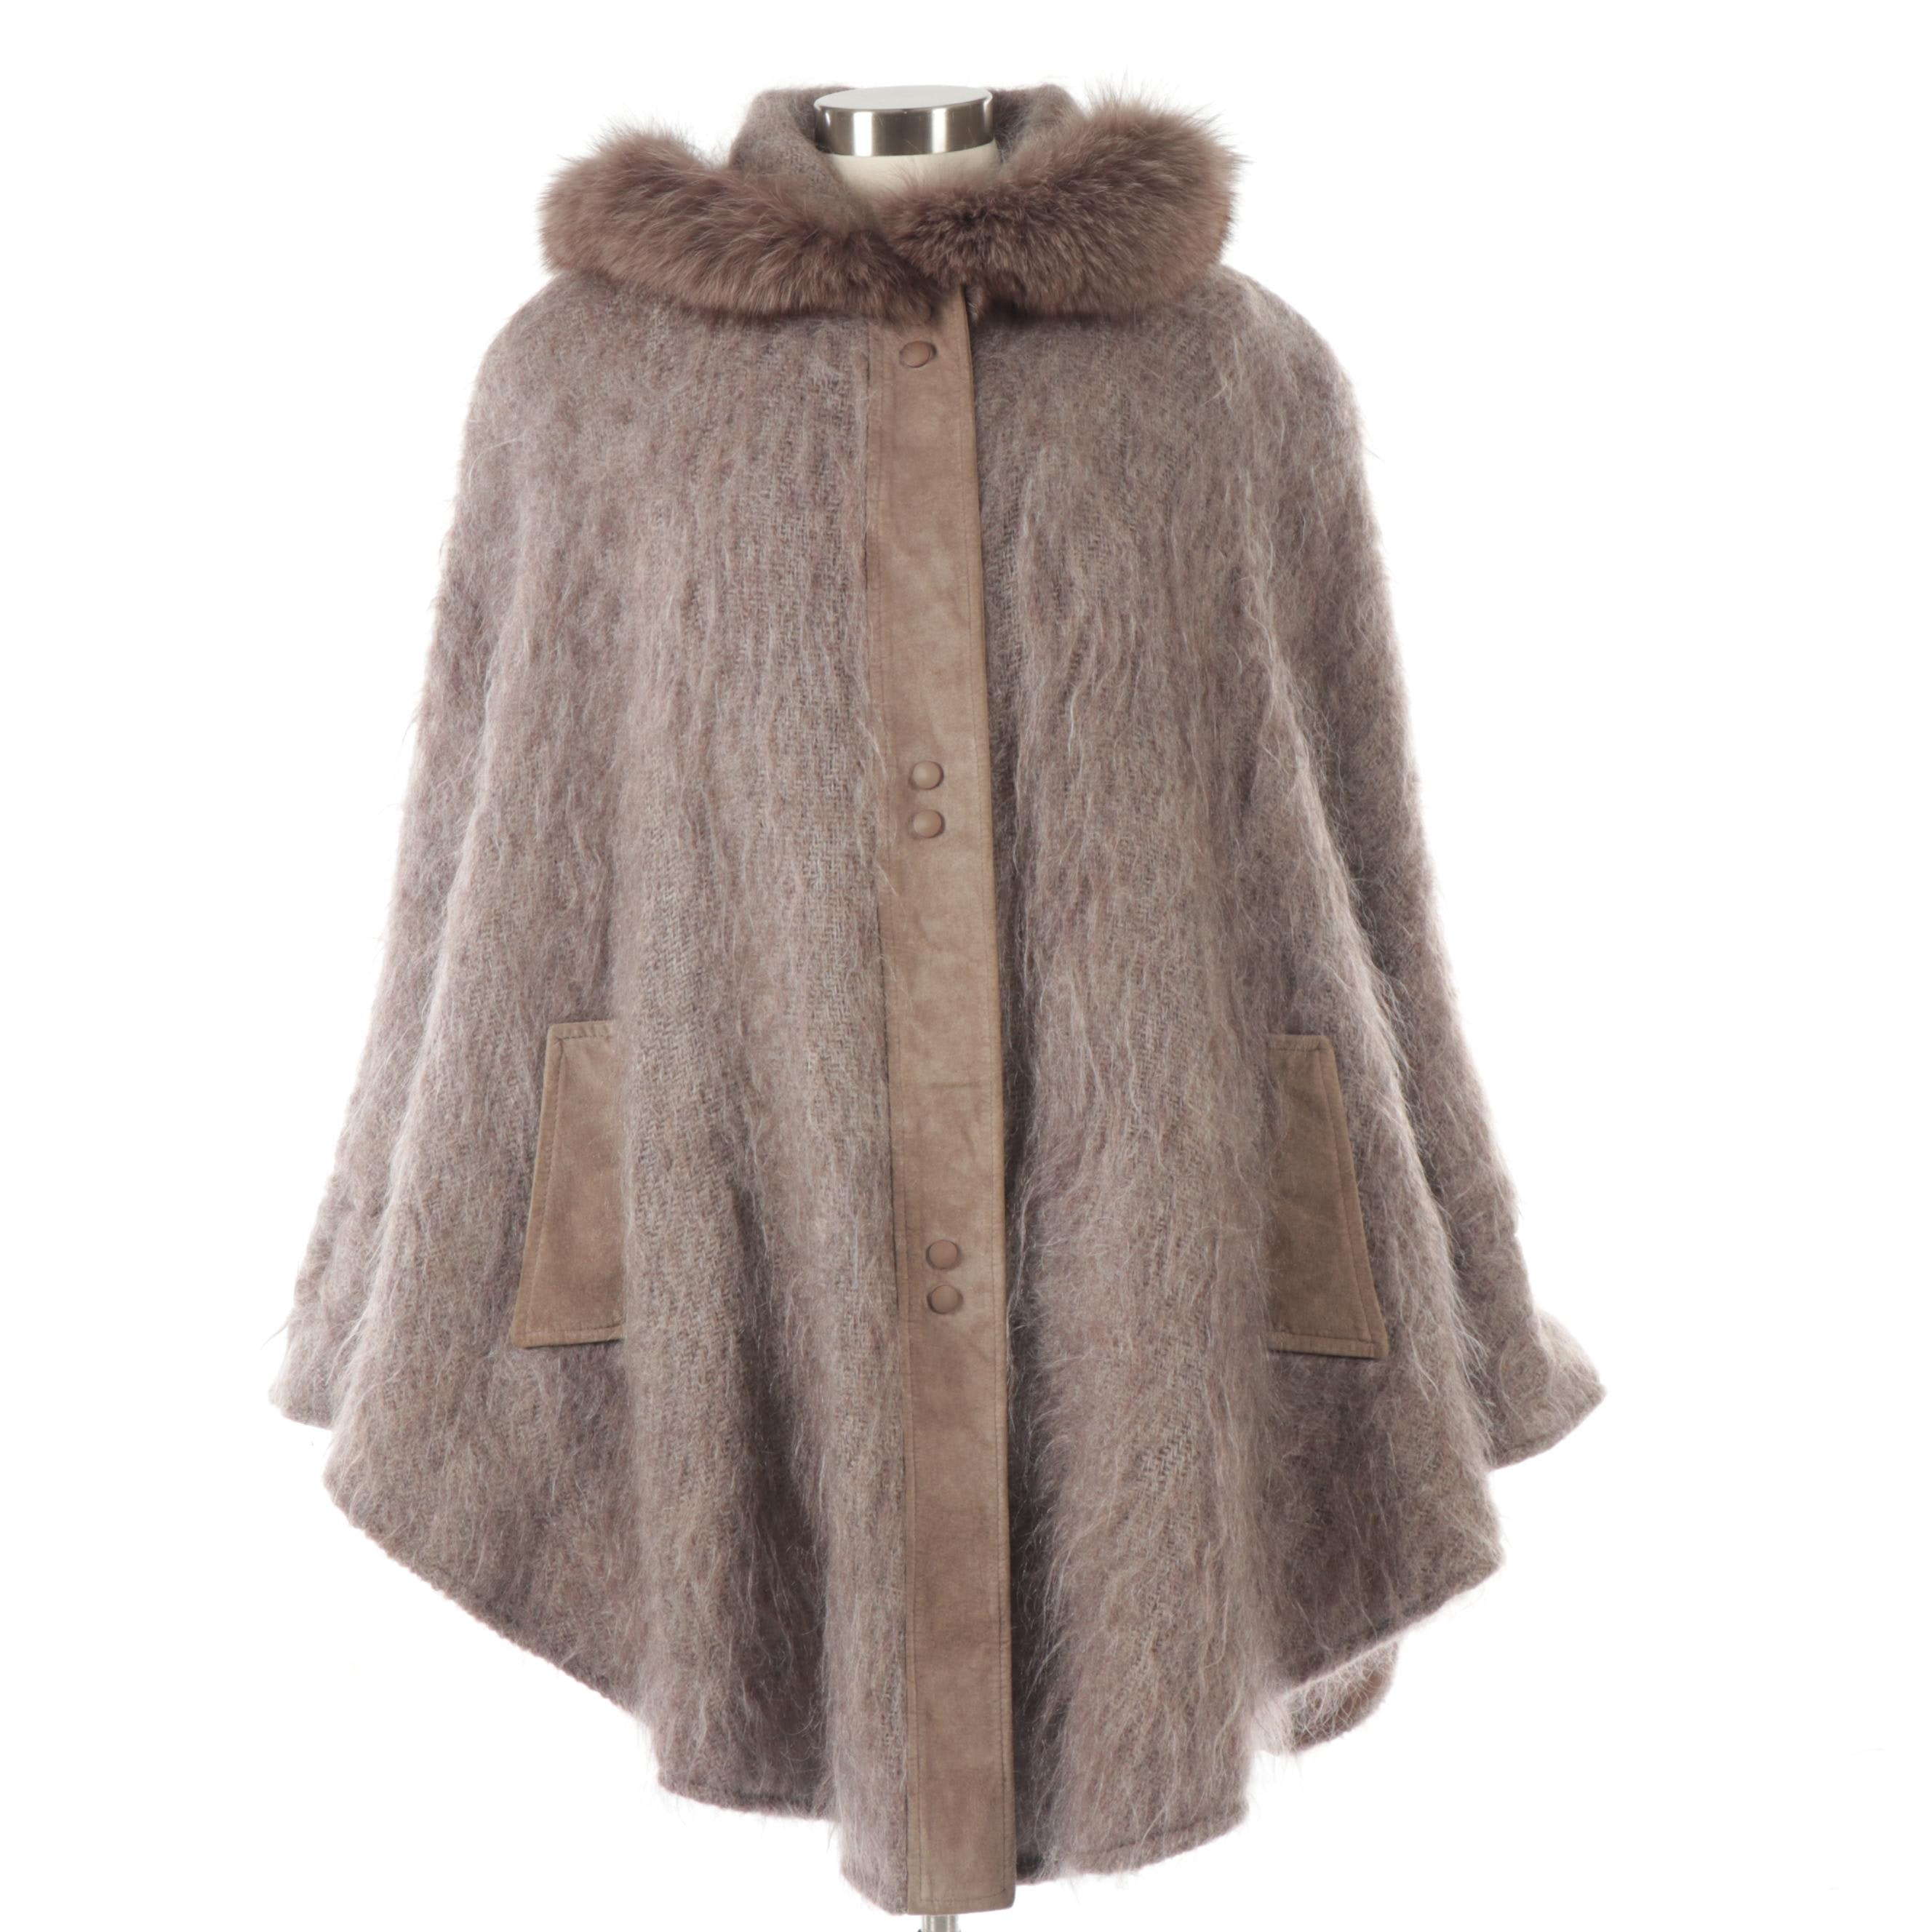 Women's Jinx Senior Mohair and Wool Blend Cape with Suede and Fox Fur Trim